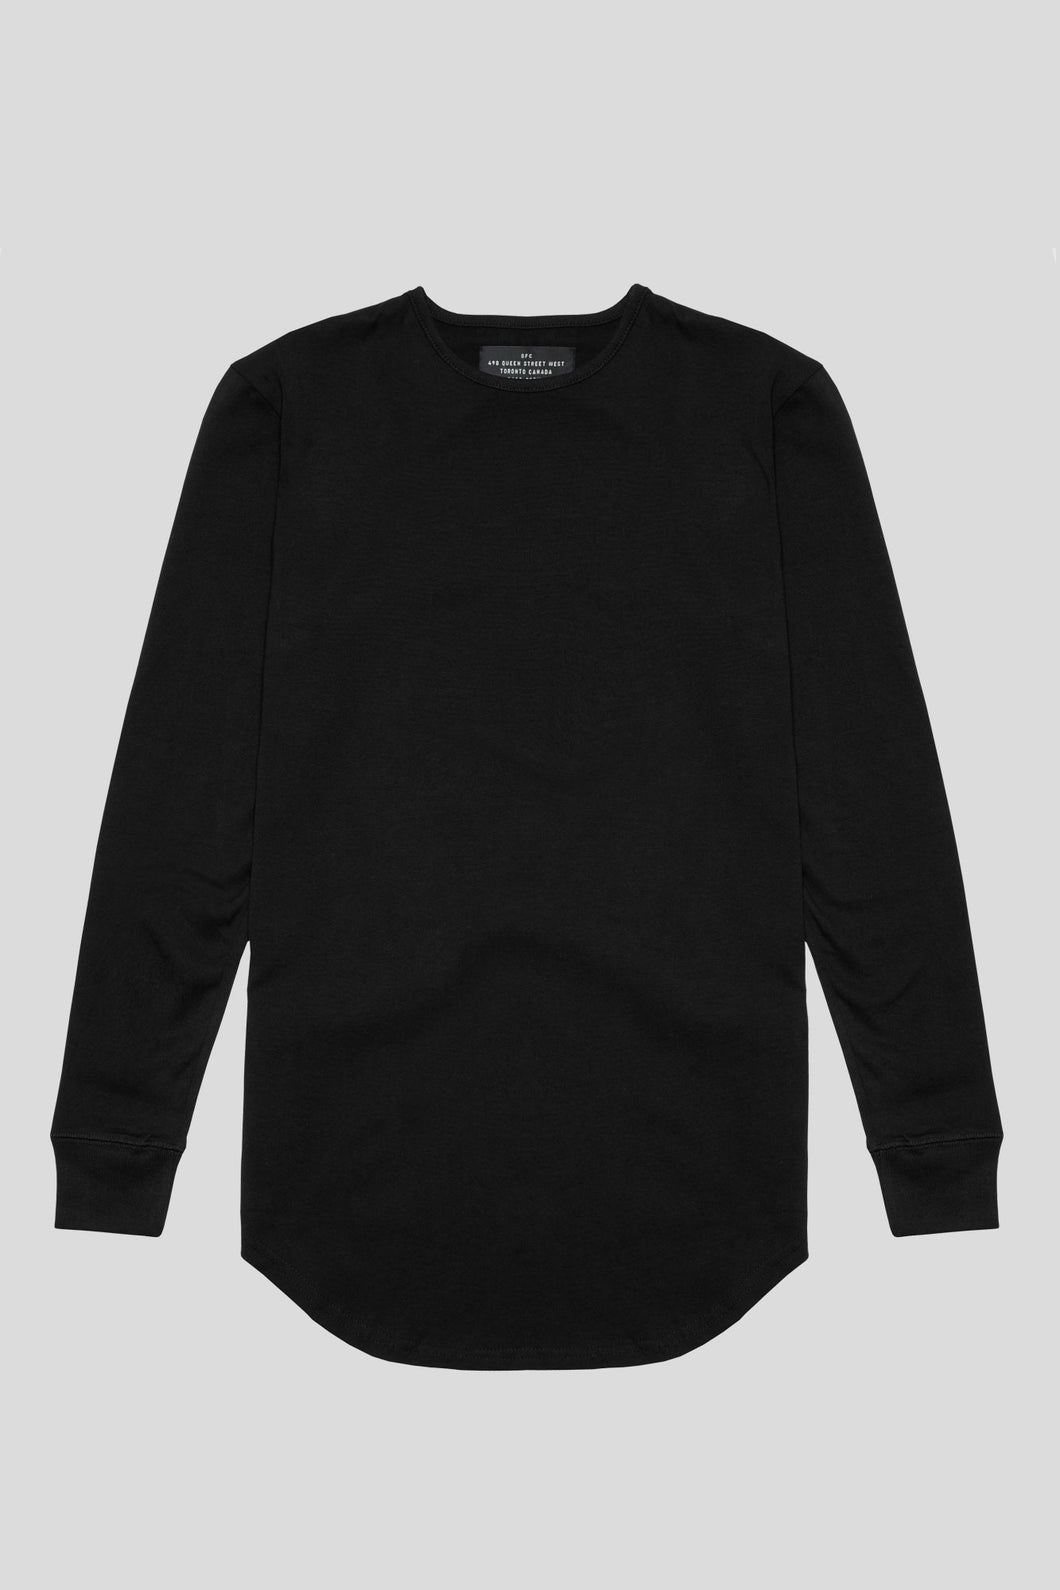 Barebones By GFC - Scoop L/S - Black